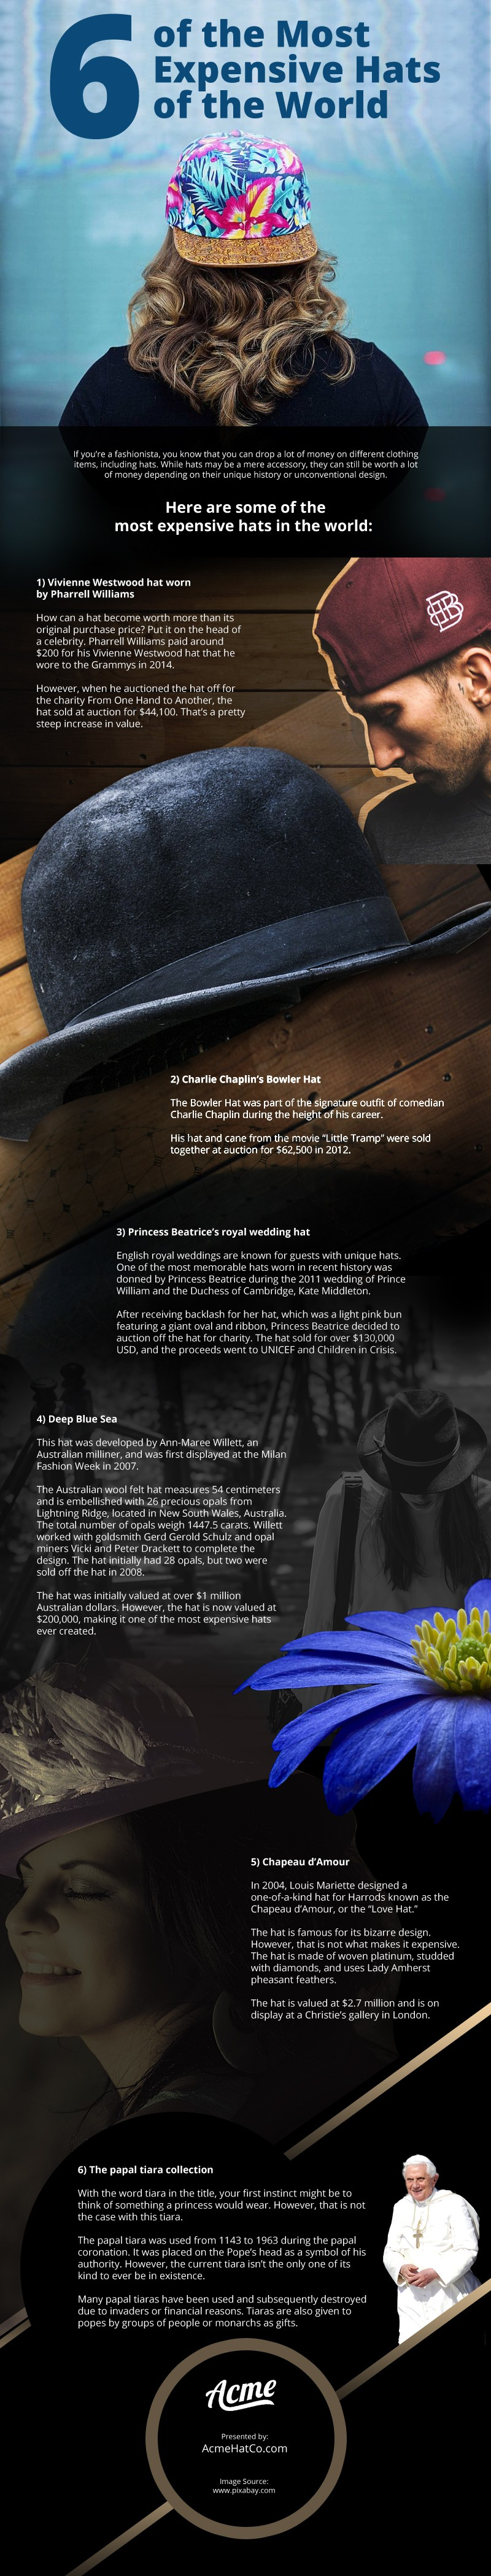 6 of the Most Expensive Hats of the World Infographic